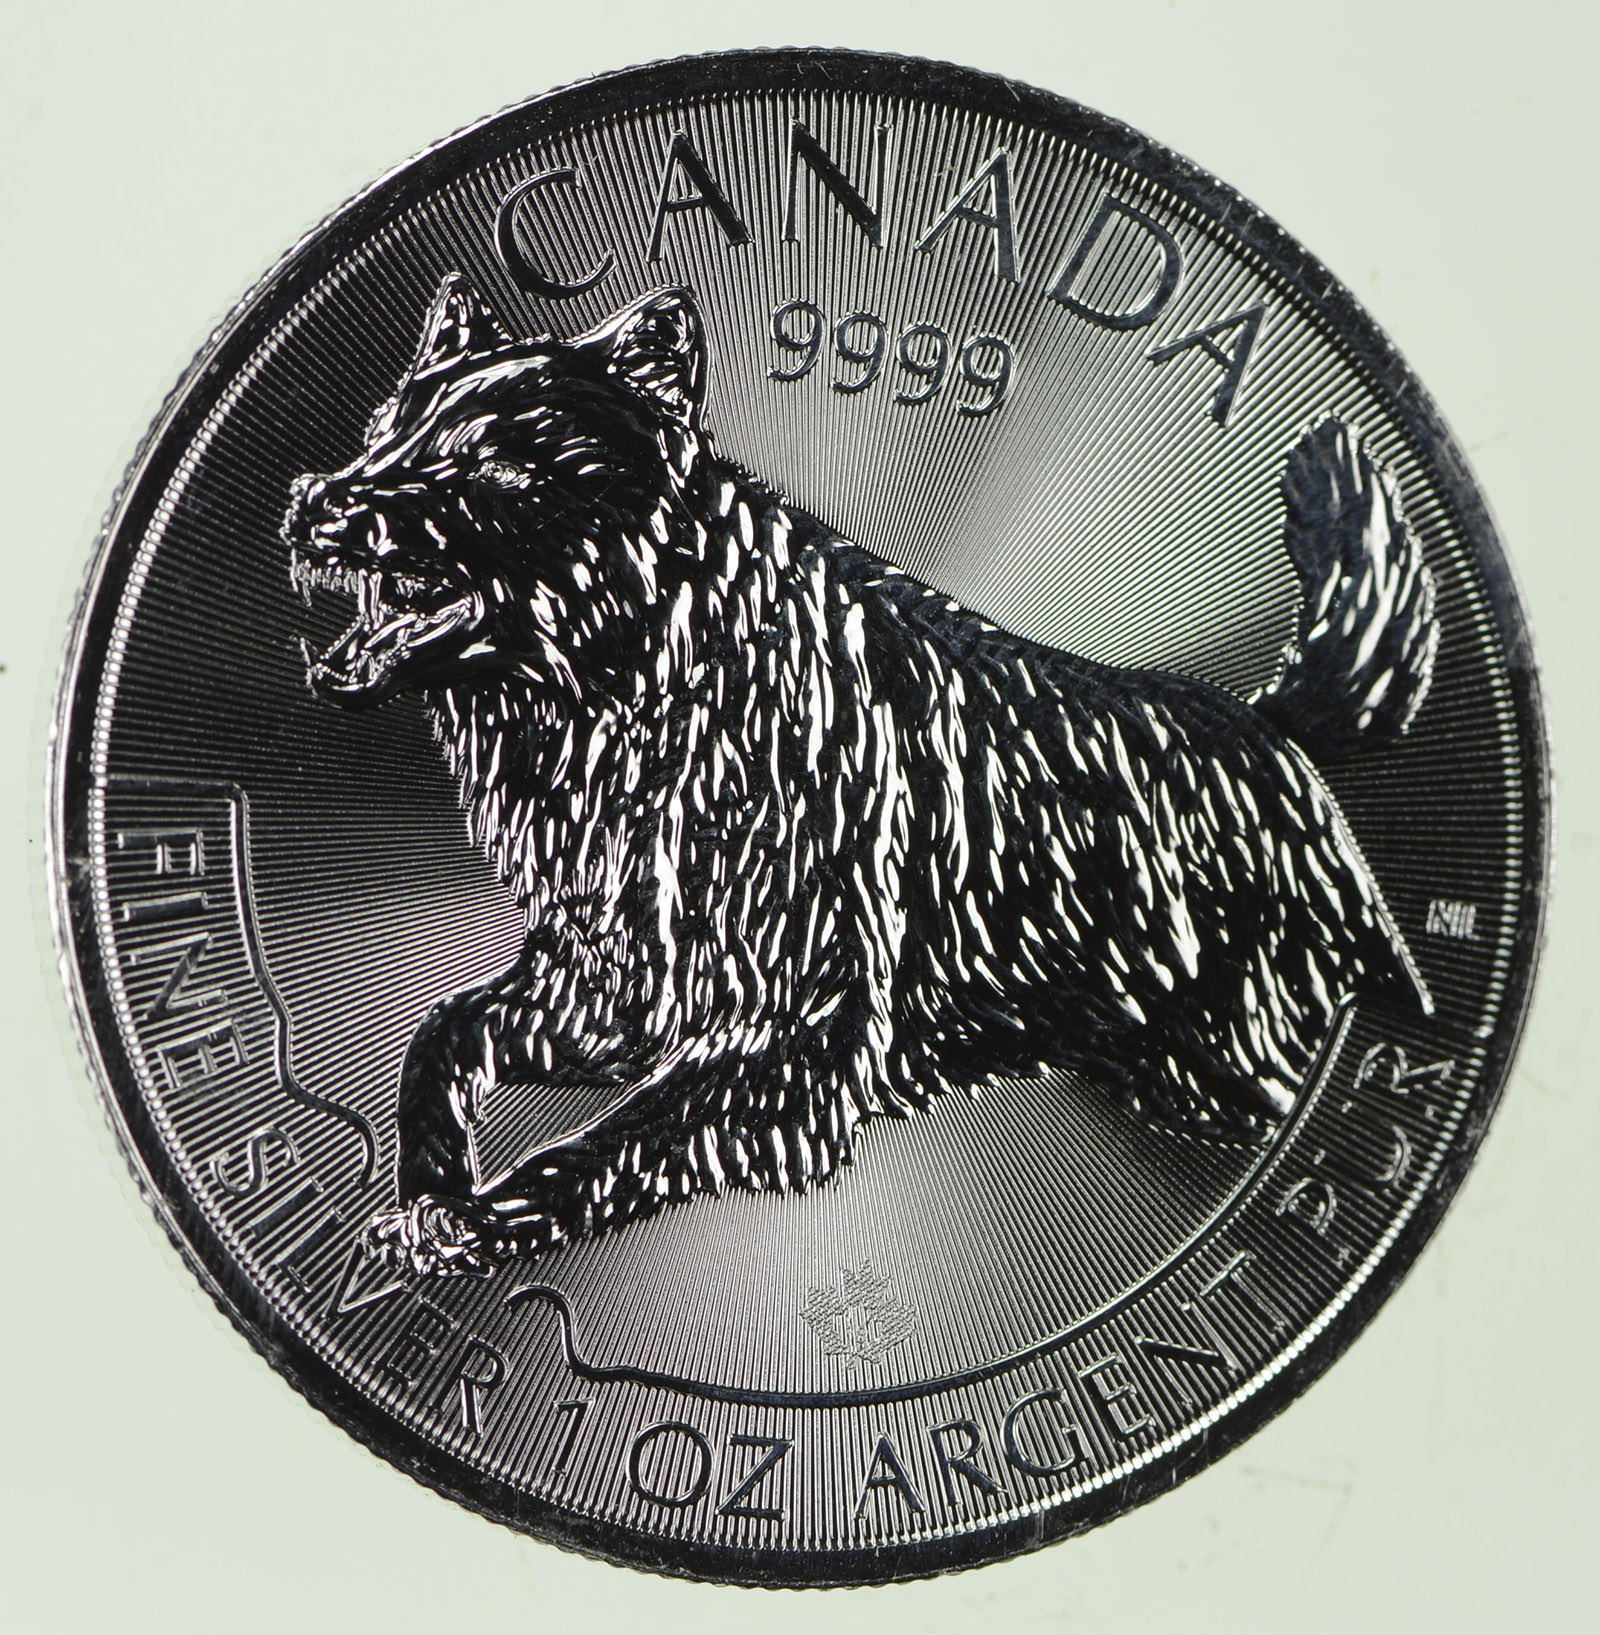 1 oz Silver Maple Canada Predator Series Wolf 2018 999 Coin $5